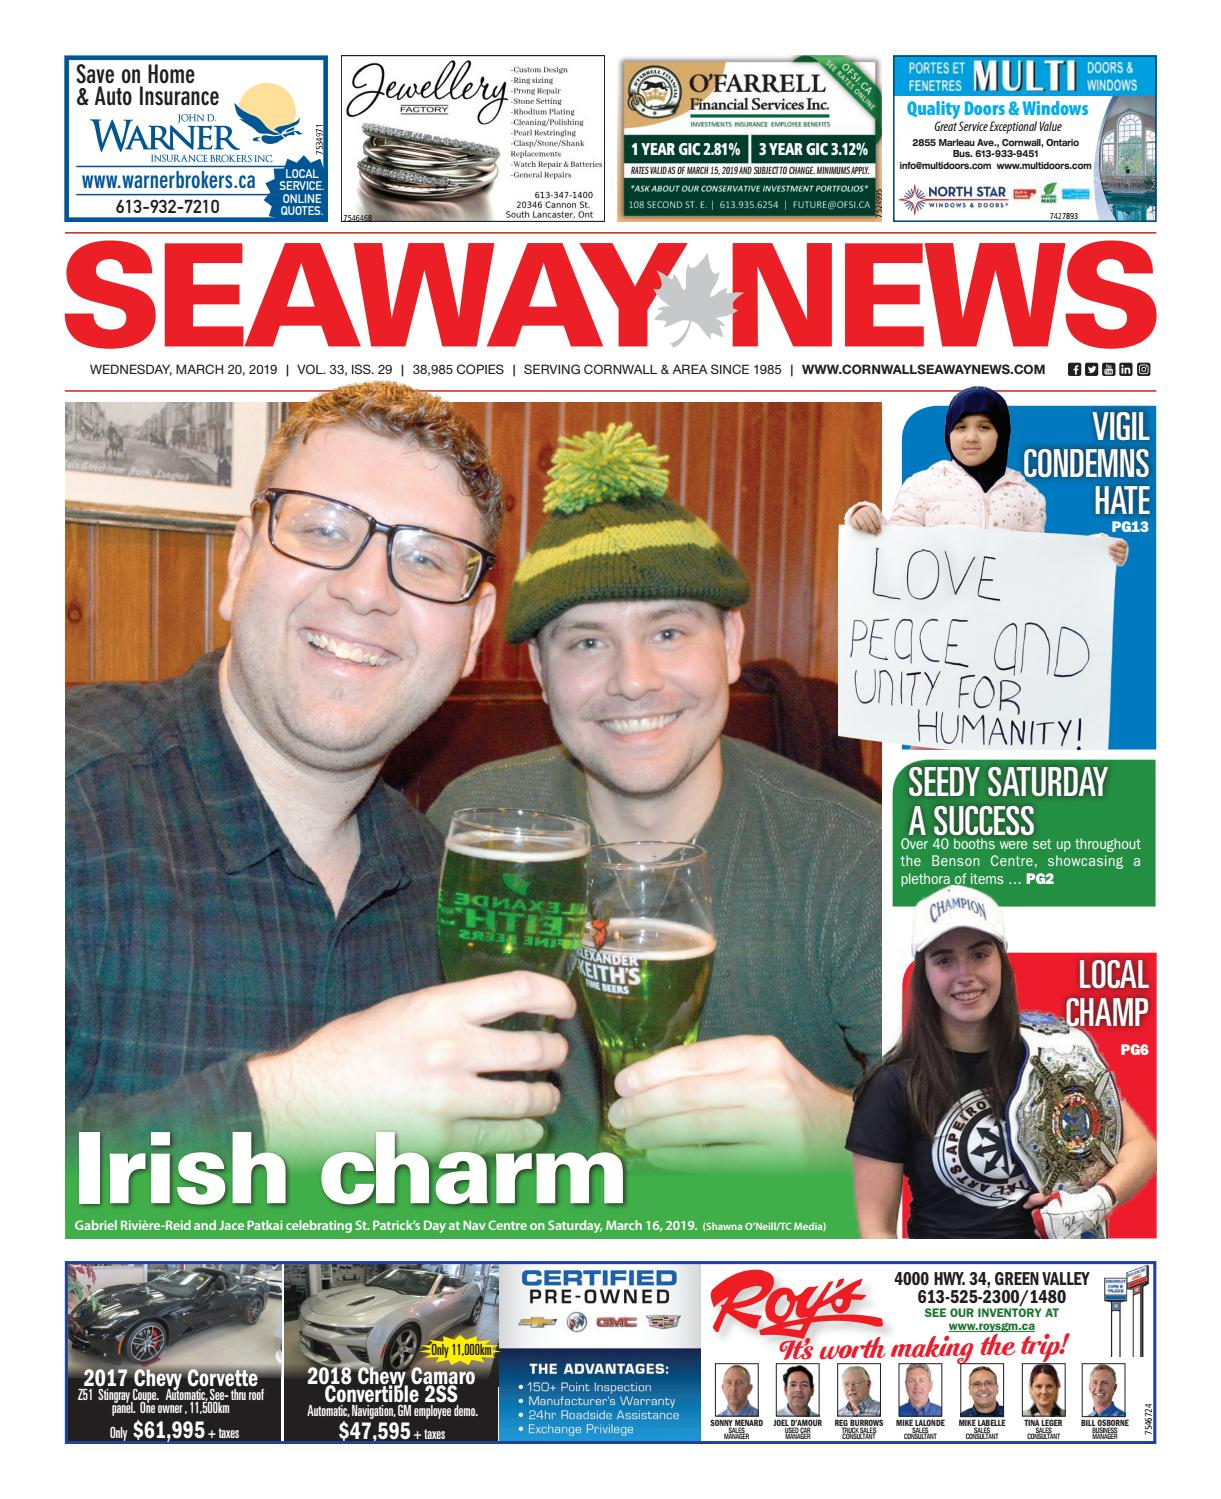 Meubles But Lisieux Cornwall Seaway News March 20 2019 Edition